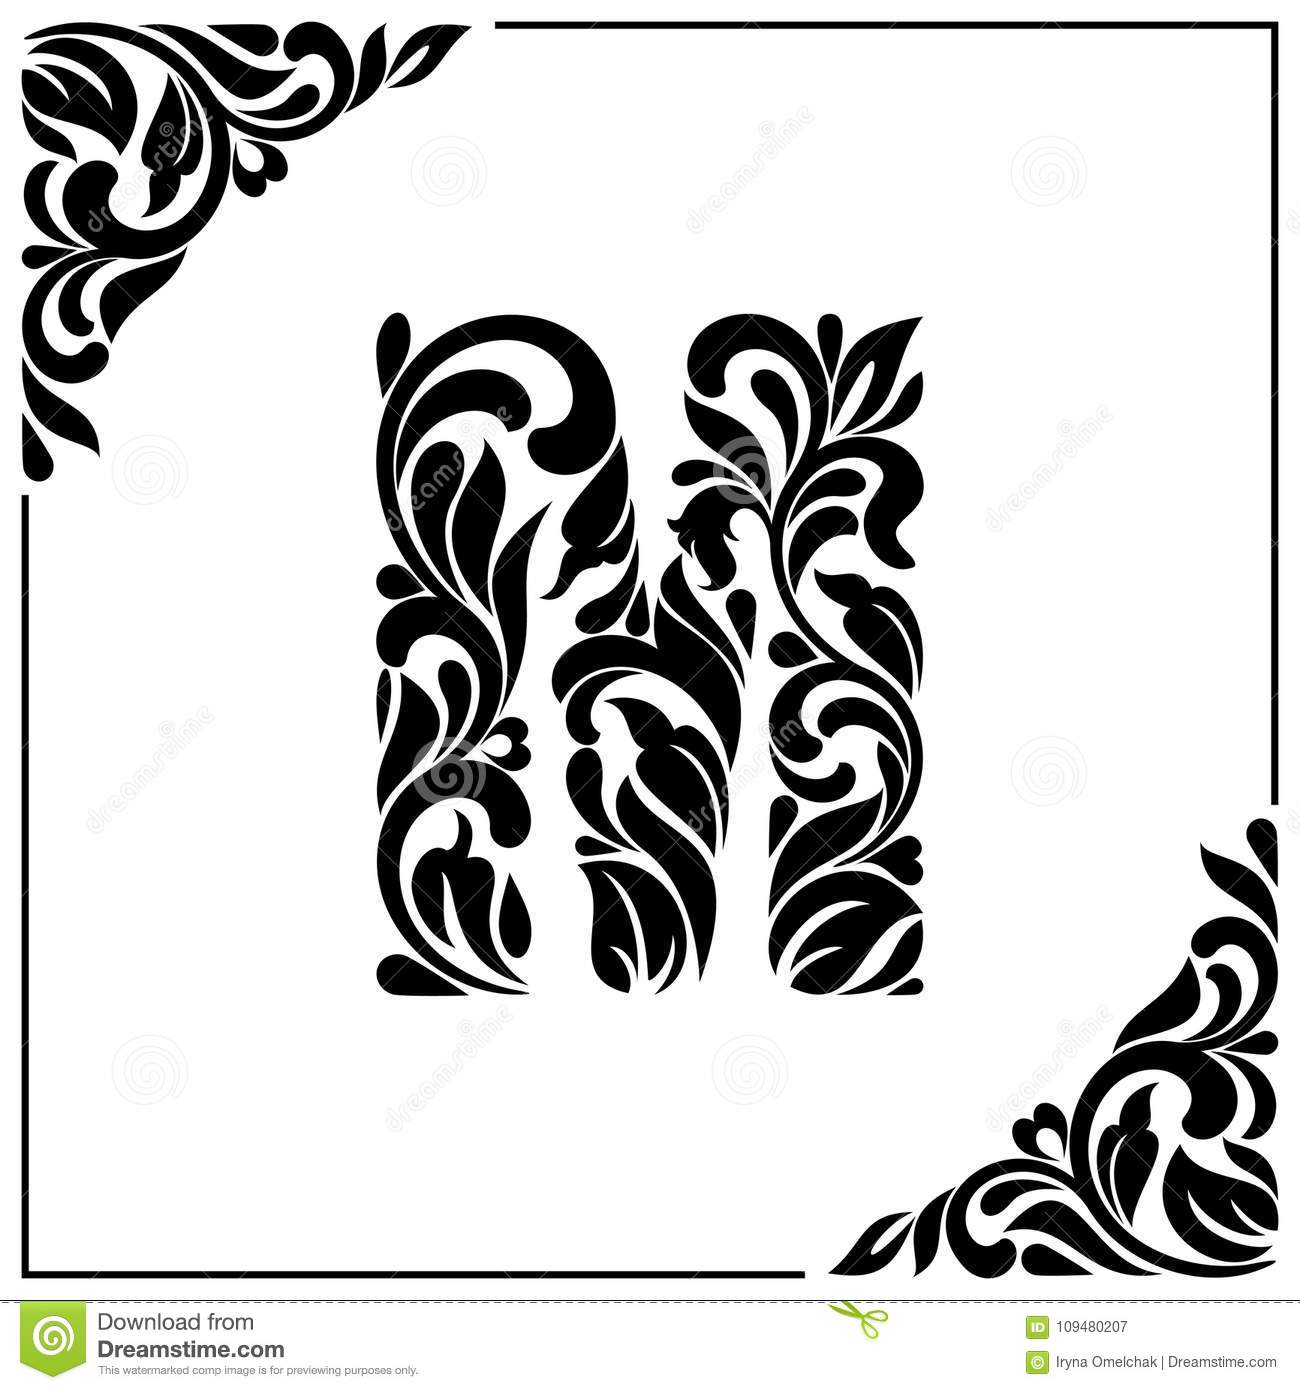 The Letter M Decorative Font With Swirls And Floral Elements